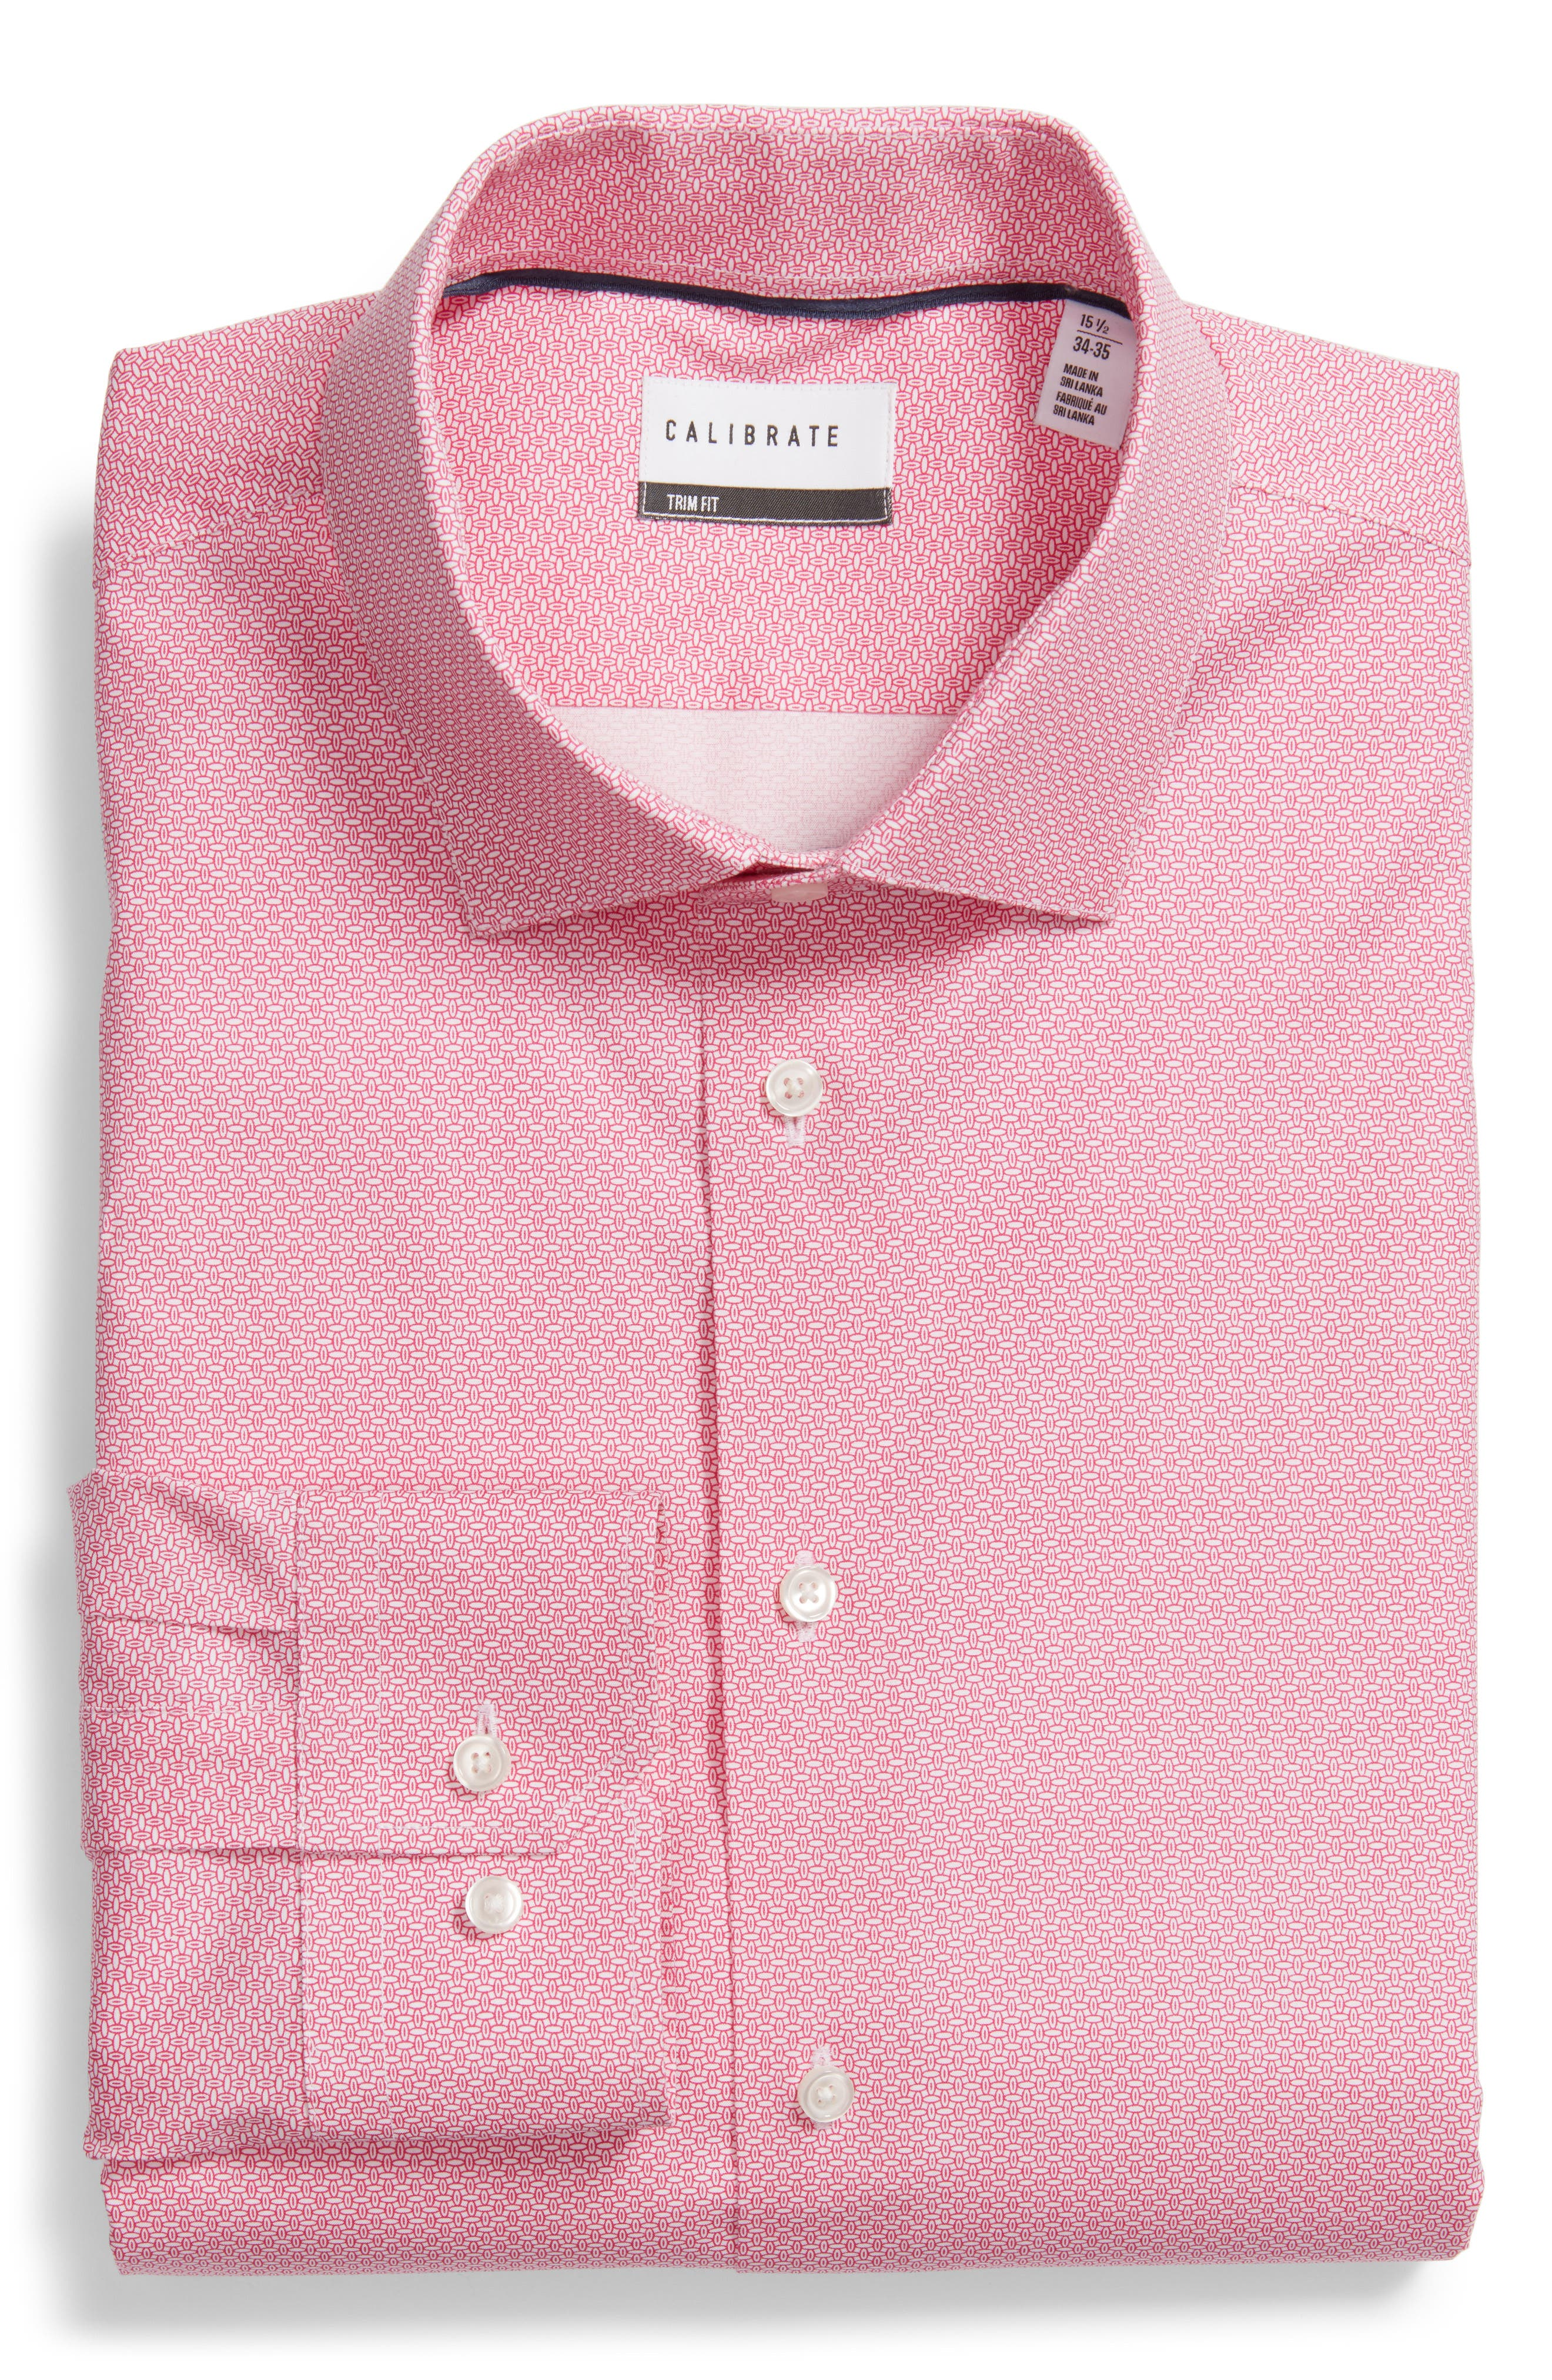 Trim Fit Stretch Geometric Dress Shirt,                             Main thumbnail 1, color,